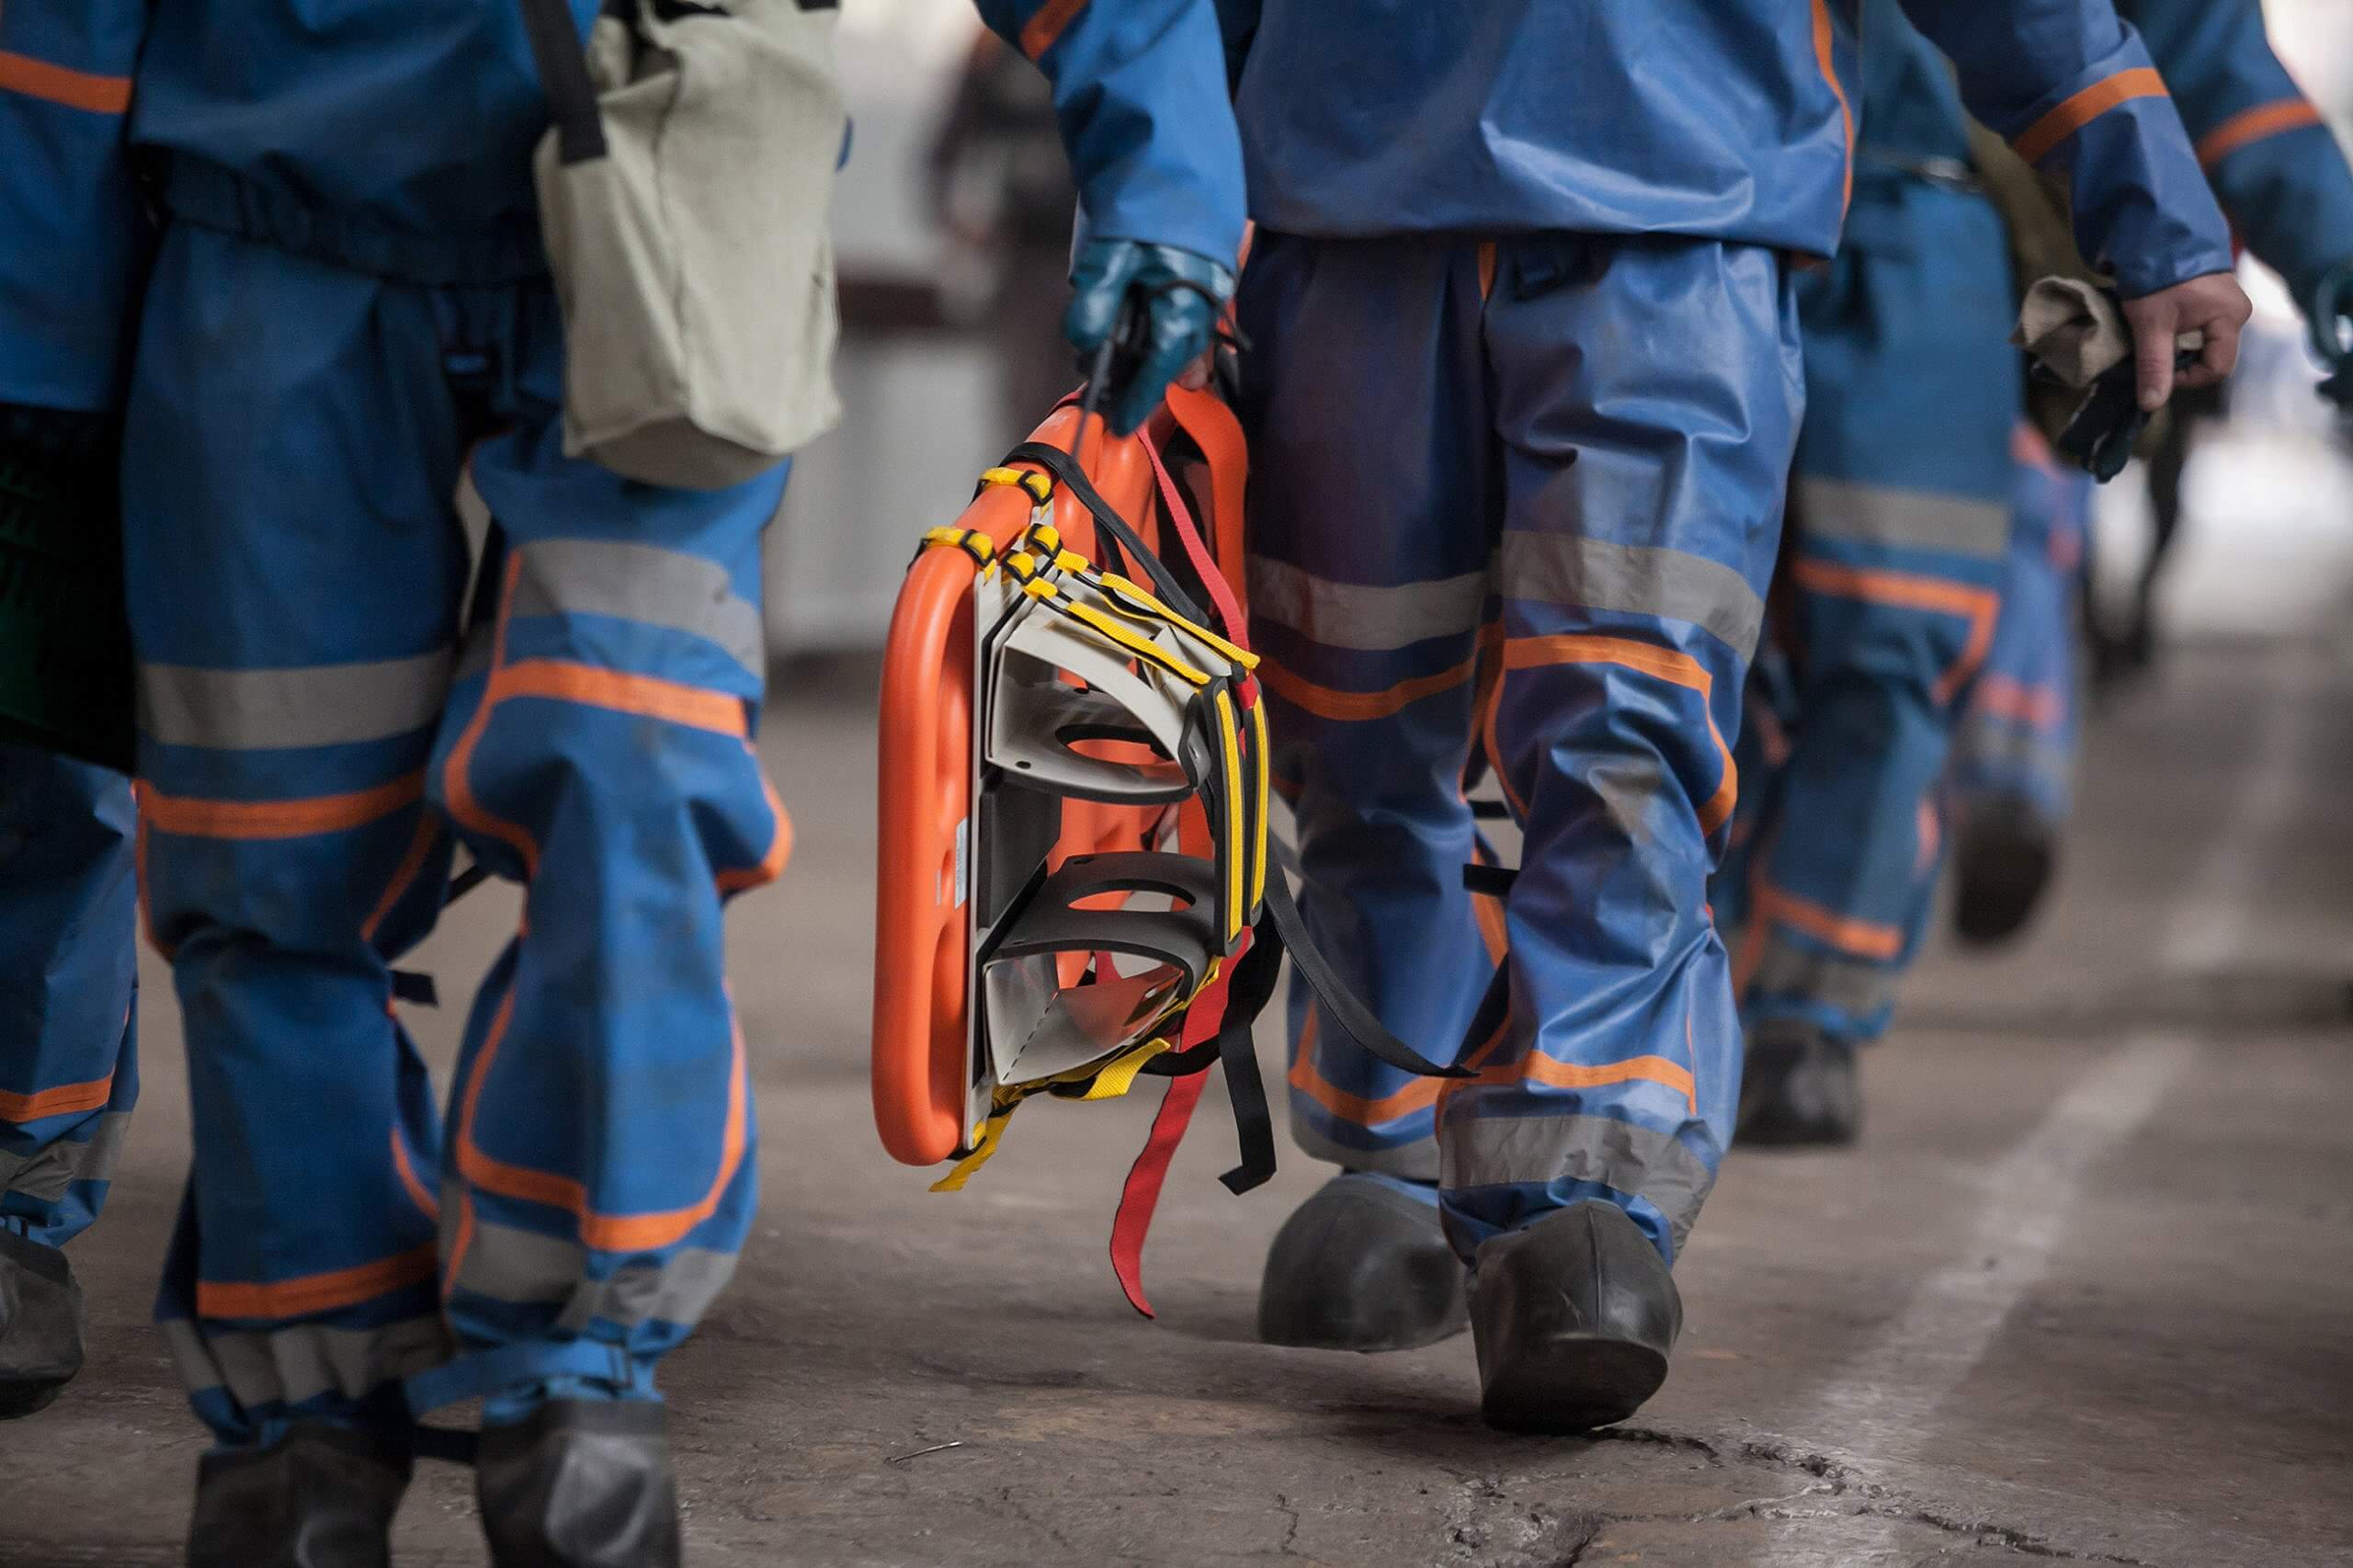 Military firefighters with possible expsosure to PFAS chemicals.